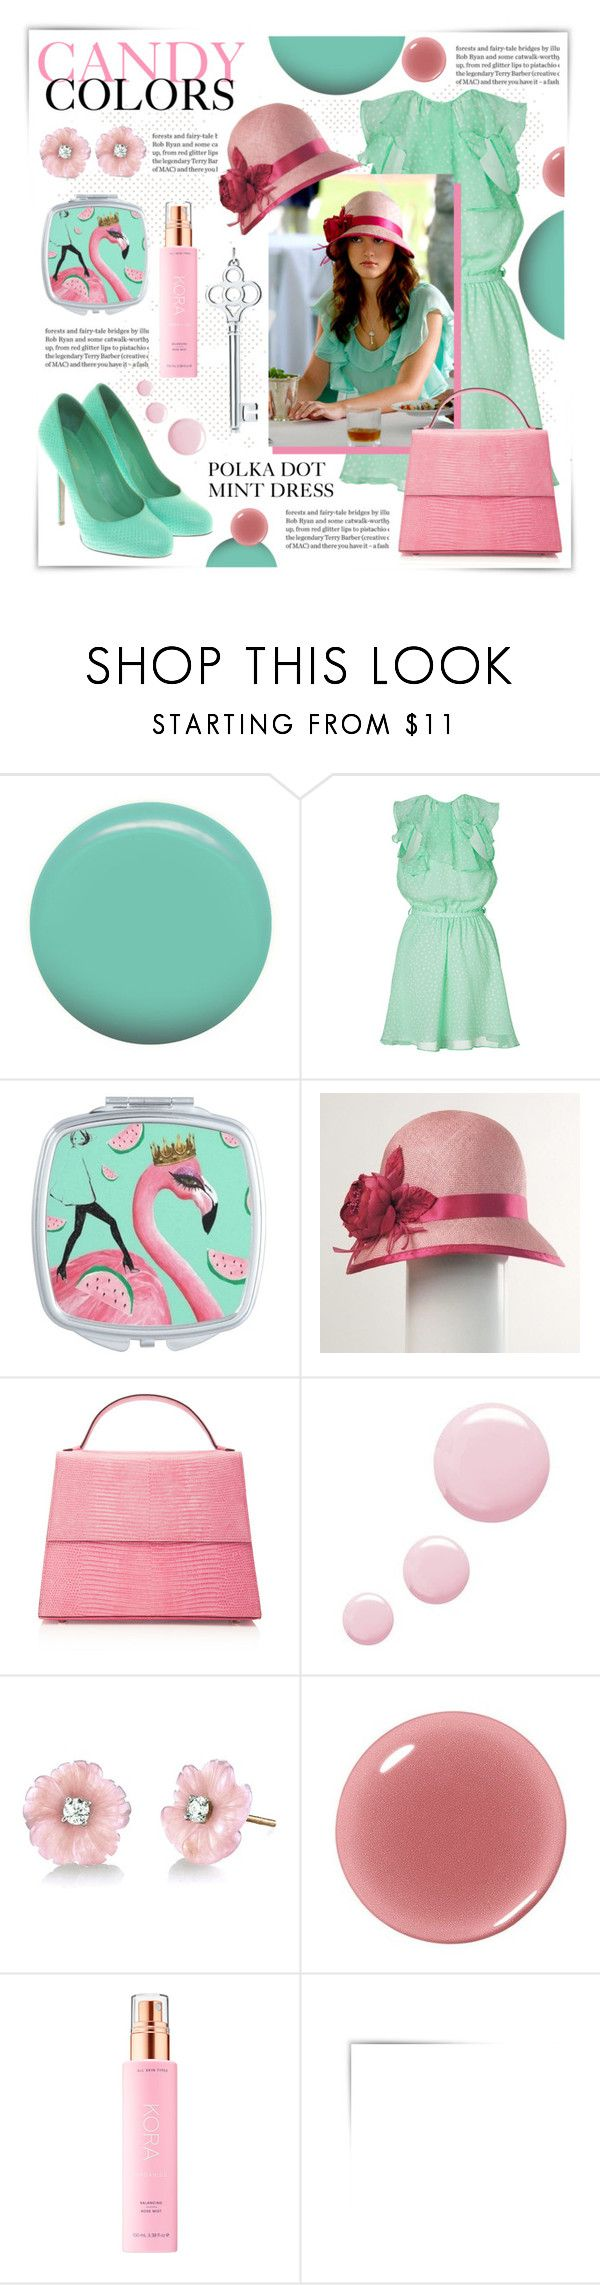 Best 25 Sergio Rossi Ideas On Pinterest V Rossi Jimmy